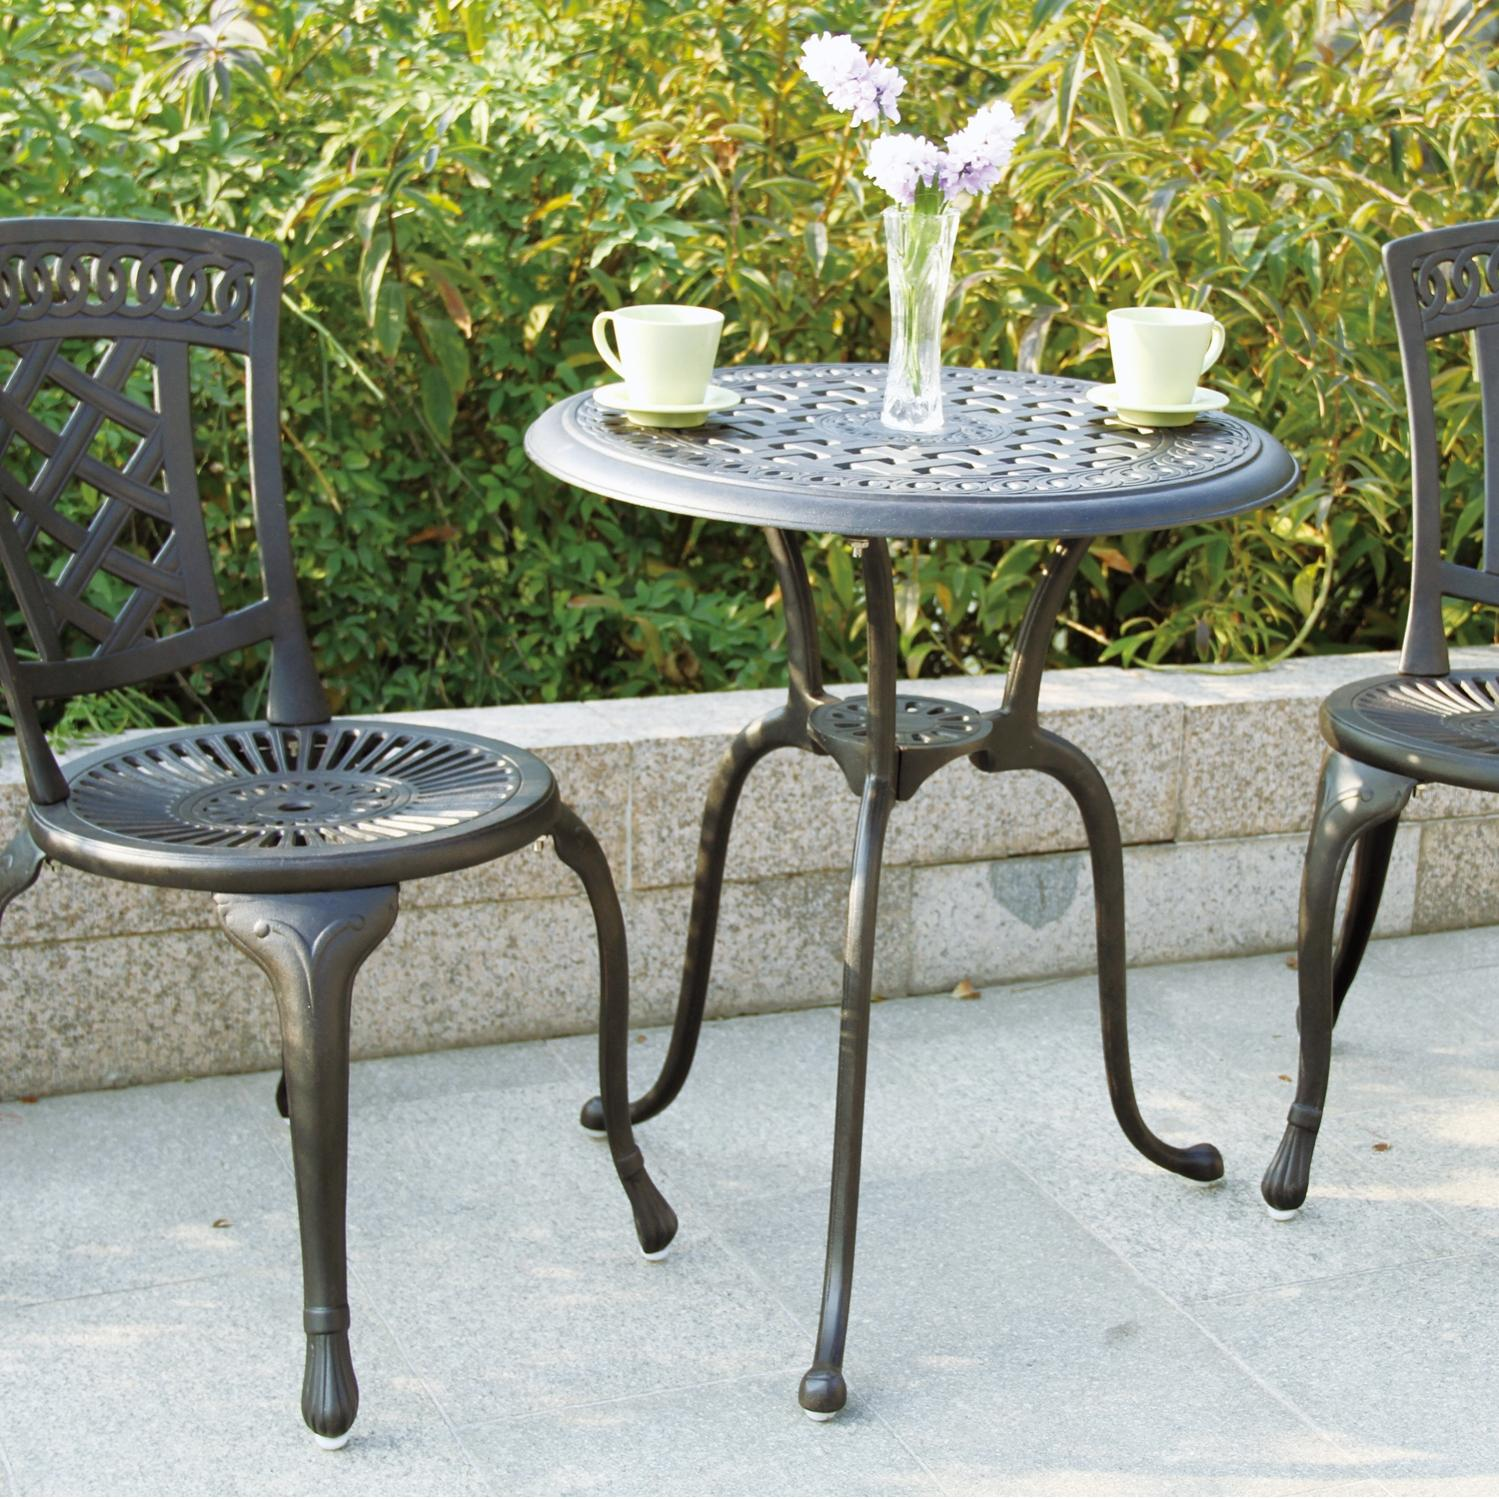 Darlee New Port 3 Piece Patio Bistro Set